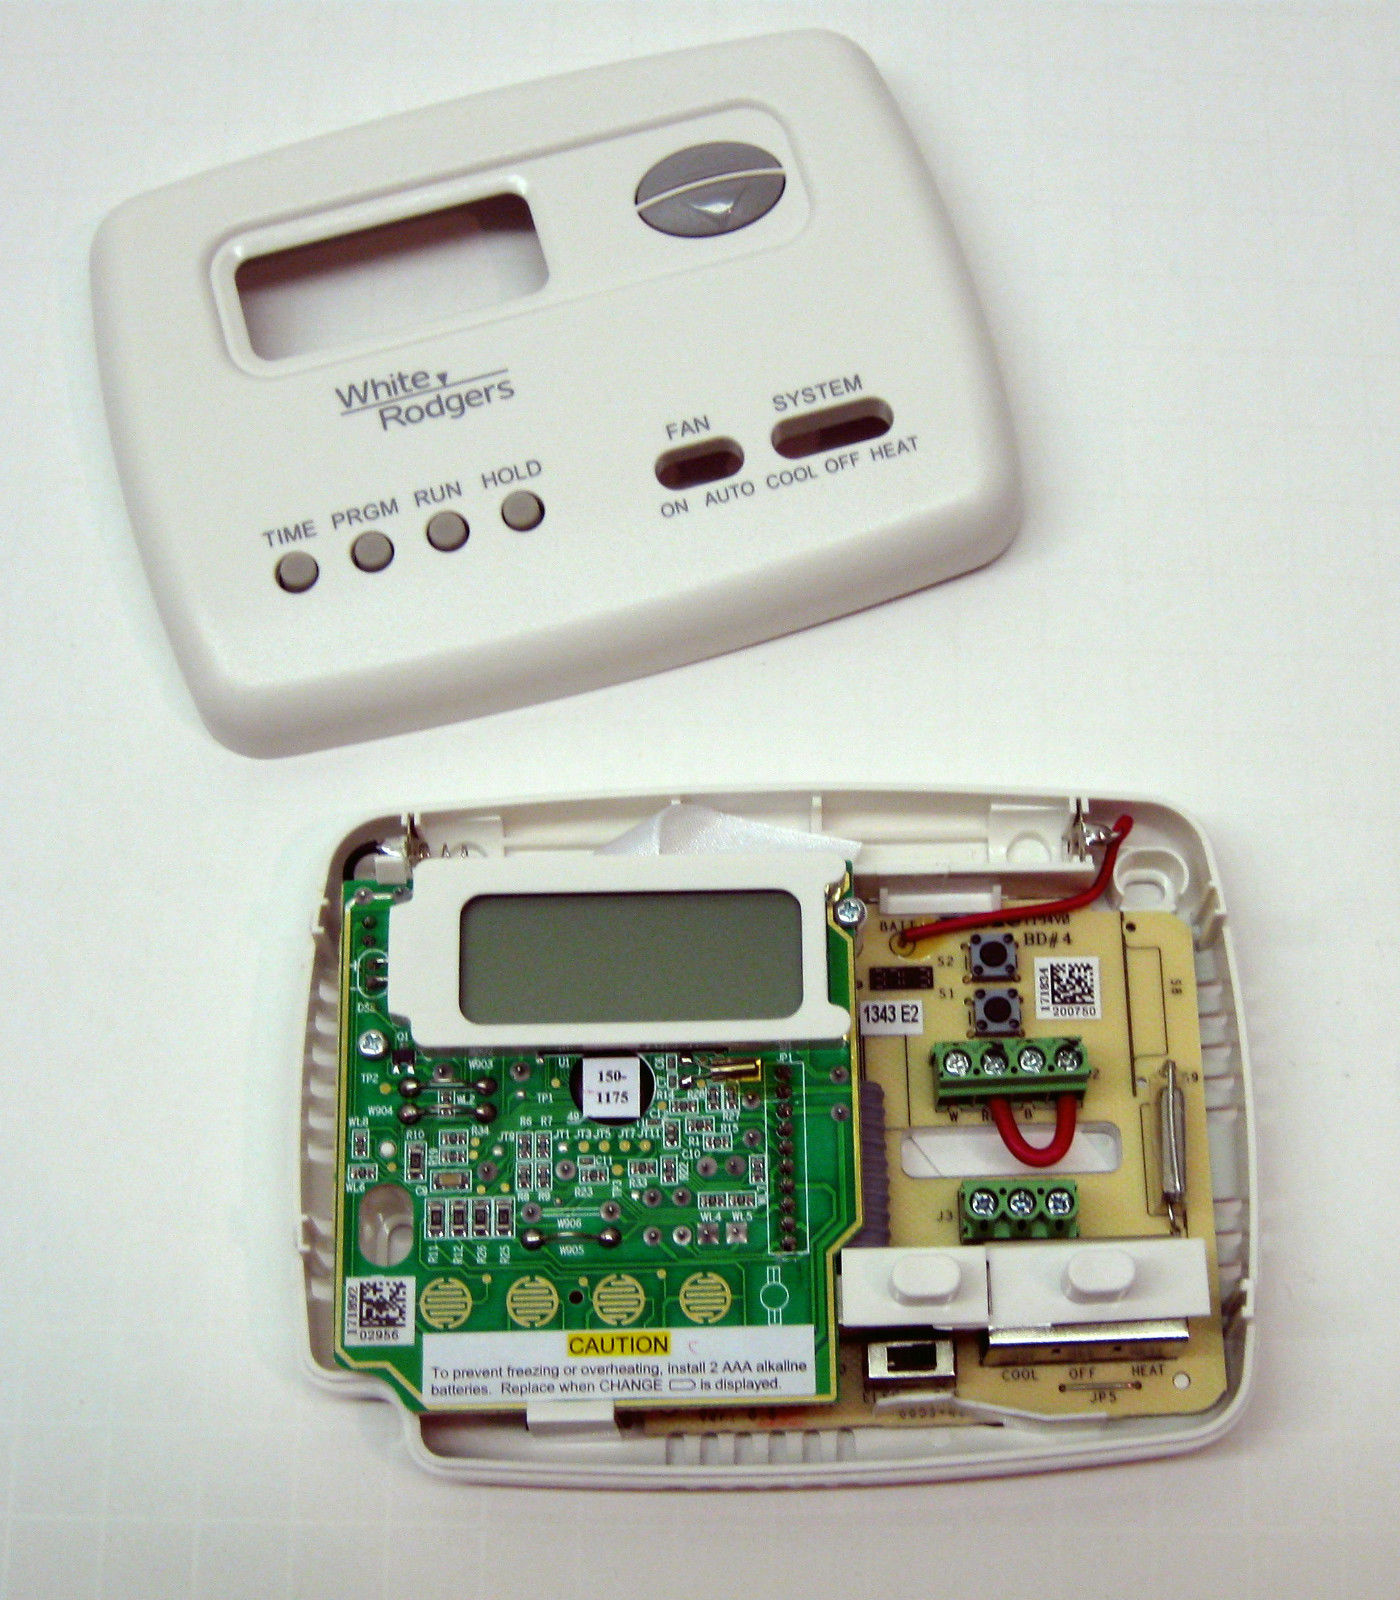 White Rodgers Thermostat Wiring Diagram from i5.walmartimages.com